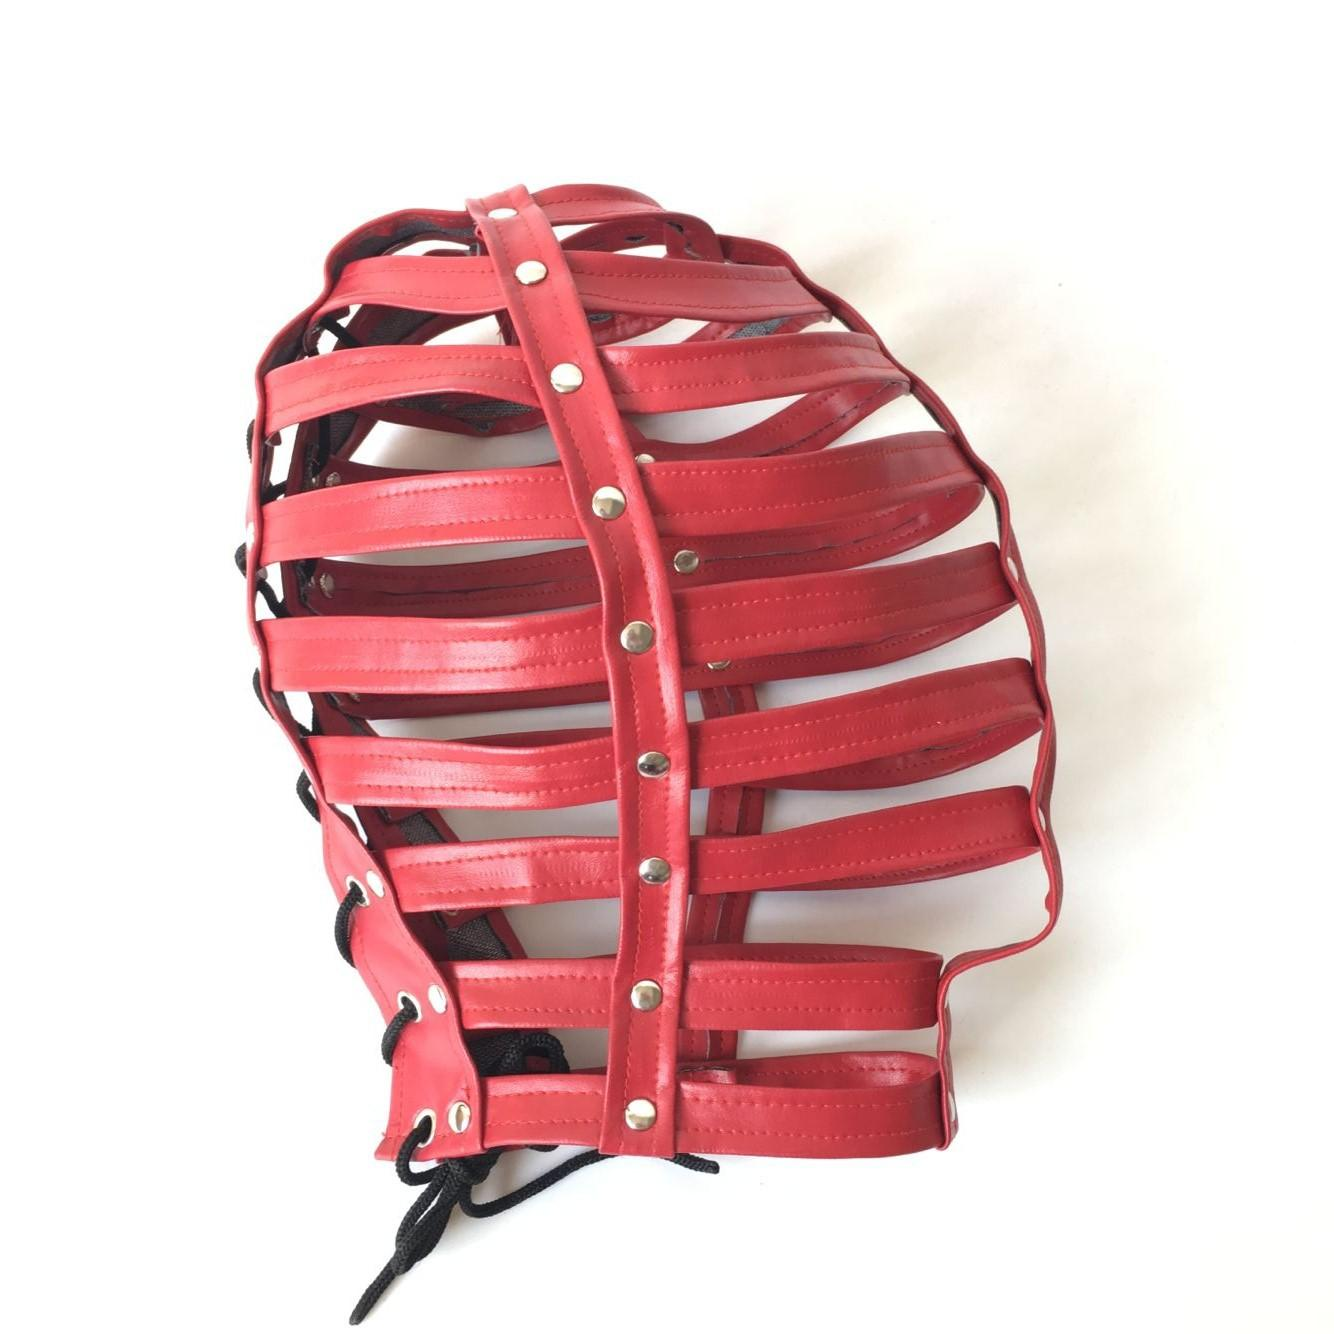 Red Adjustable full body bondage belt leather Sleeveless bikini with hoodgear hood fetish SM restraints strap clothing games sex toys